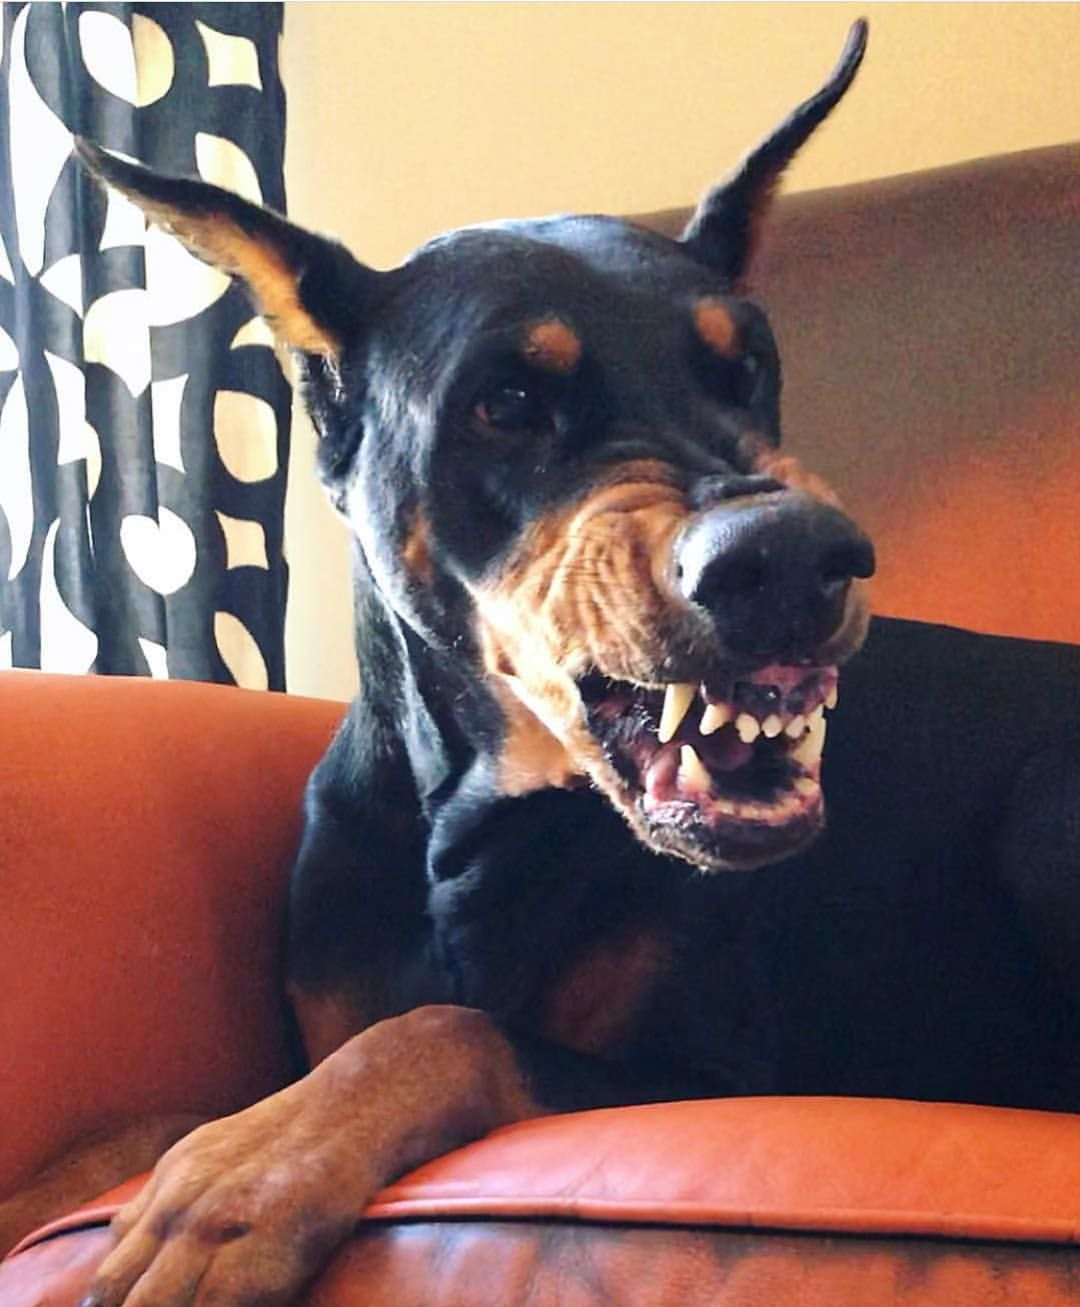 Before Coffee Veryvincenty Doberman Pinscher Dog Doberman